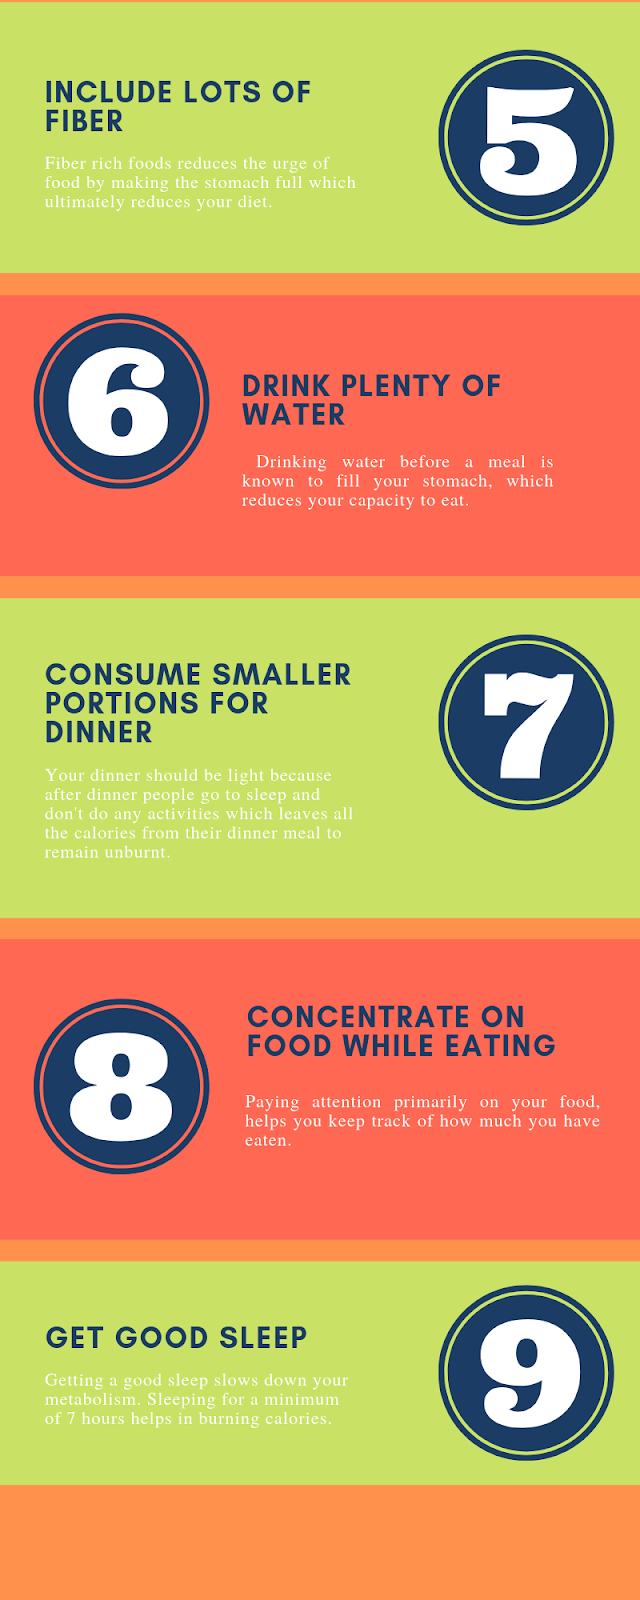 How to lose weight fast without exercise? - Infographic 5-9